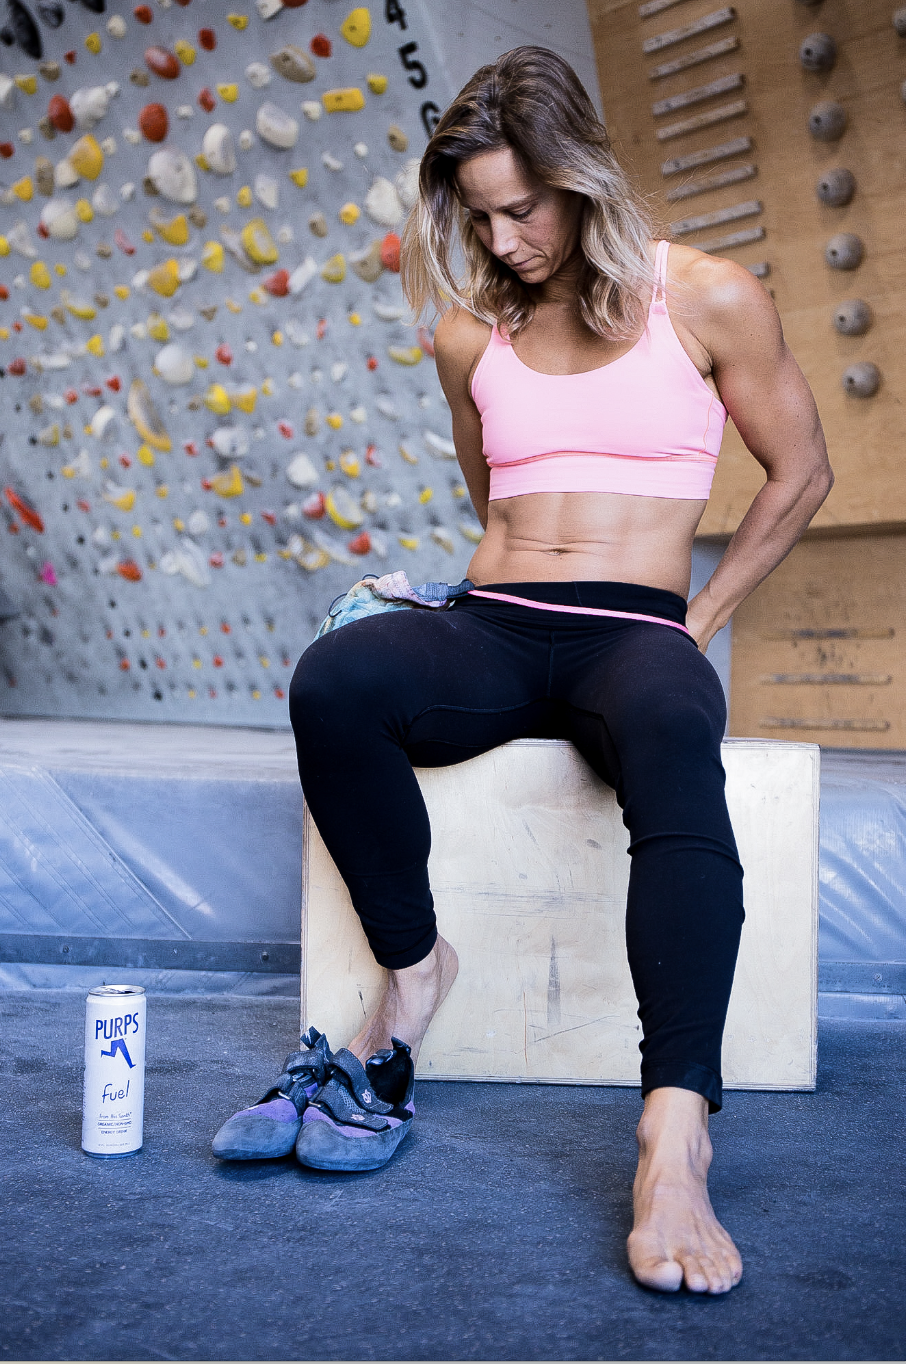 Kjersti Buaas PURPS athlete